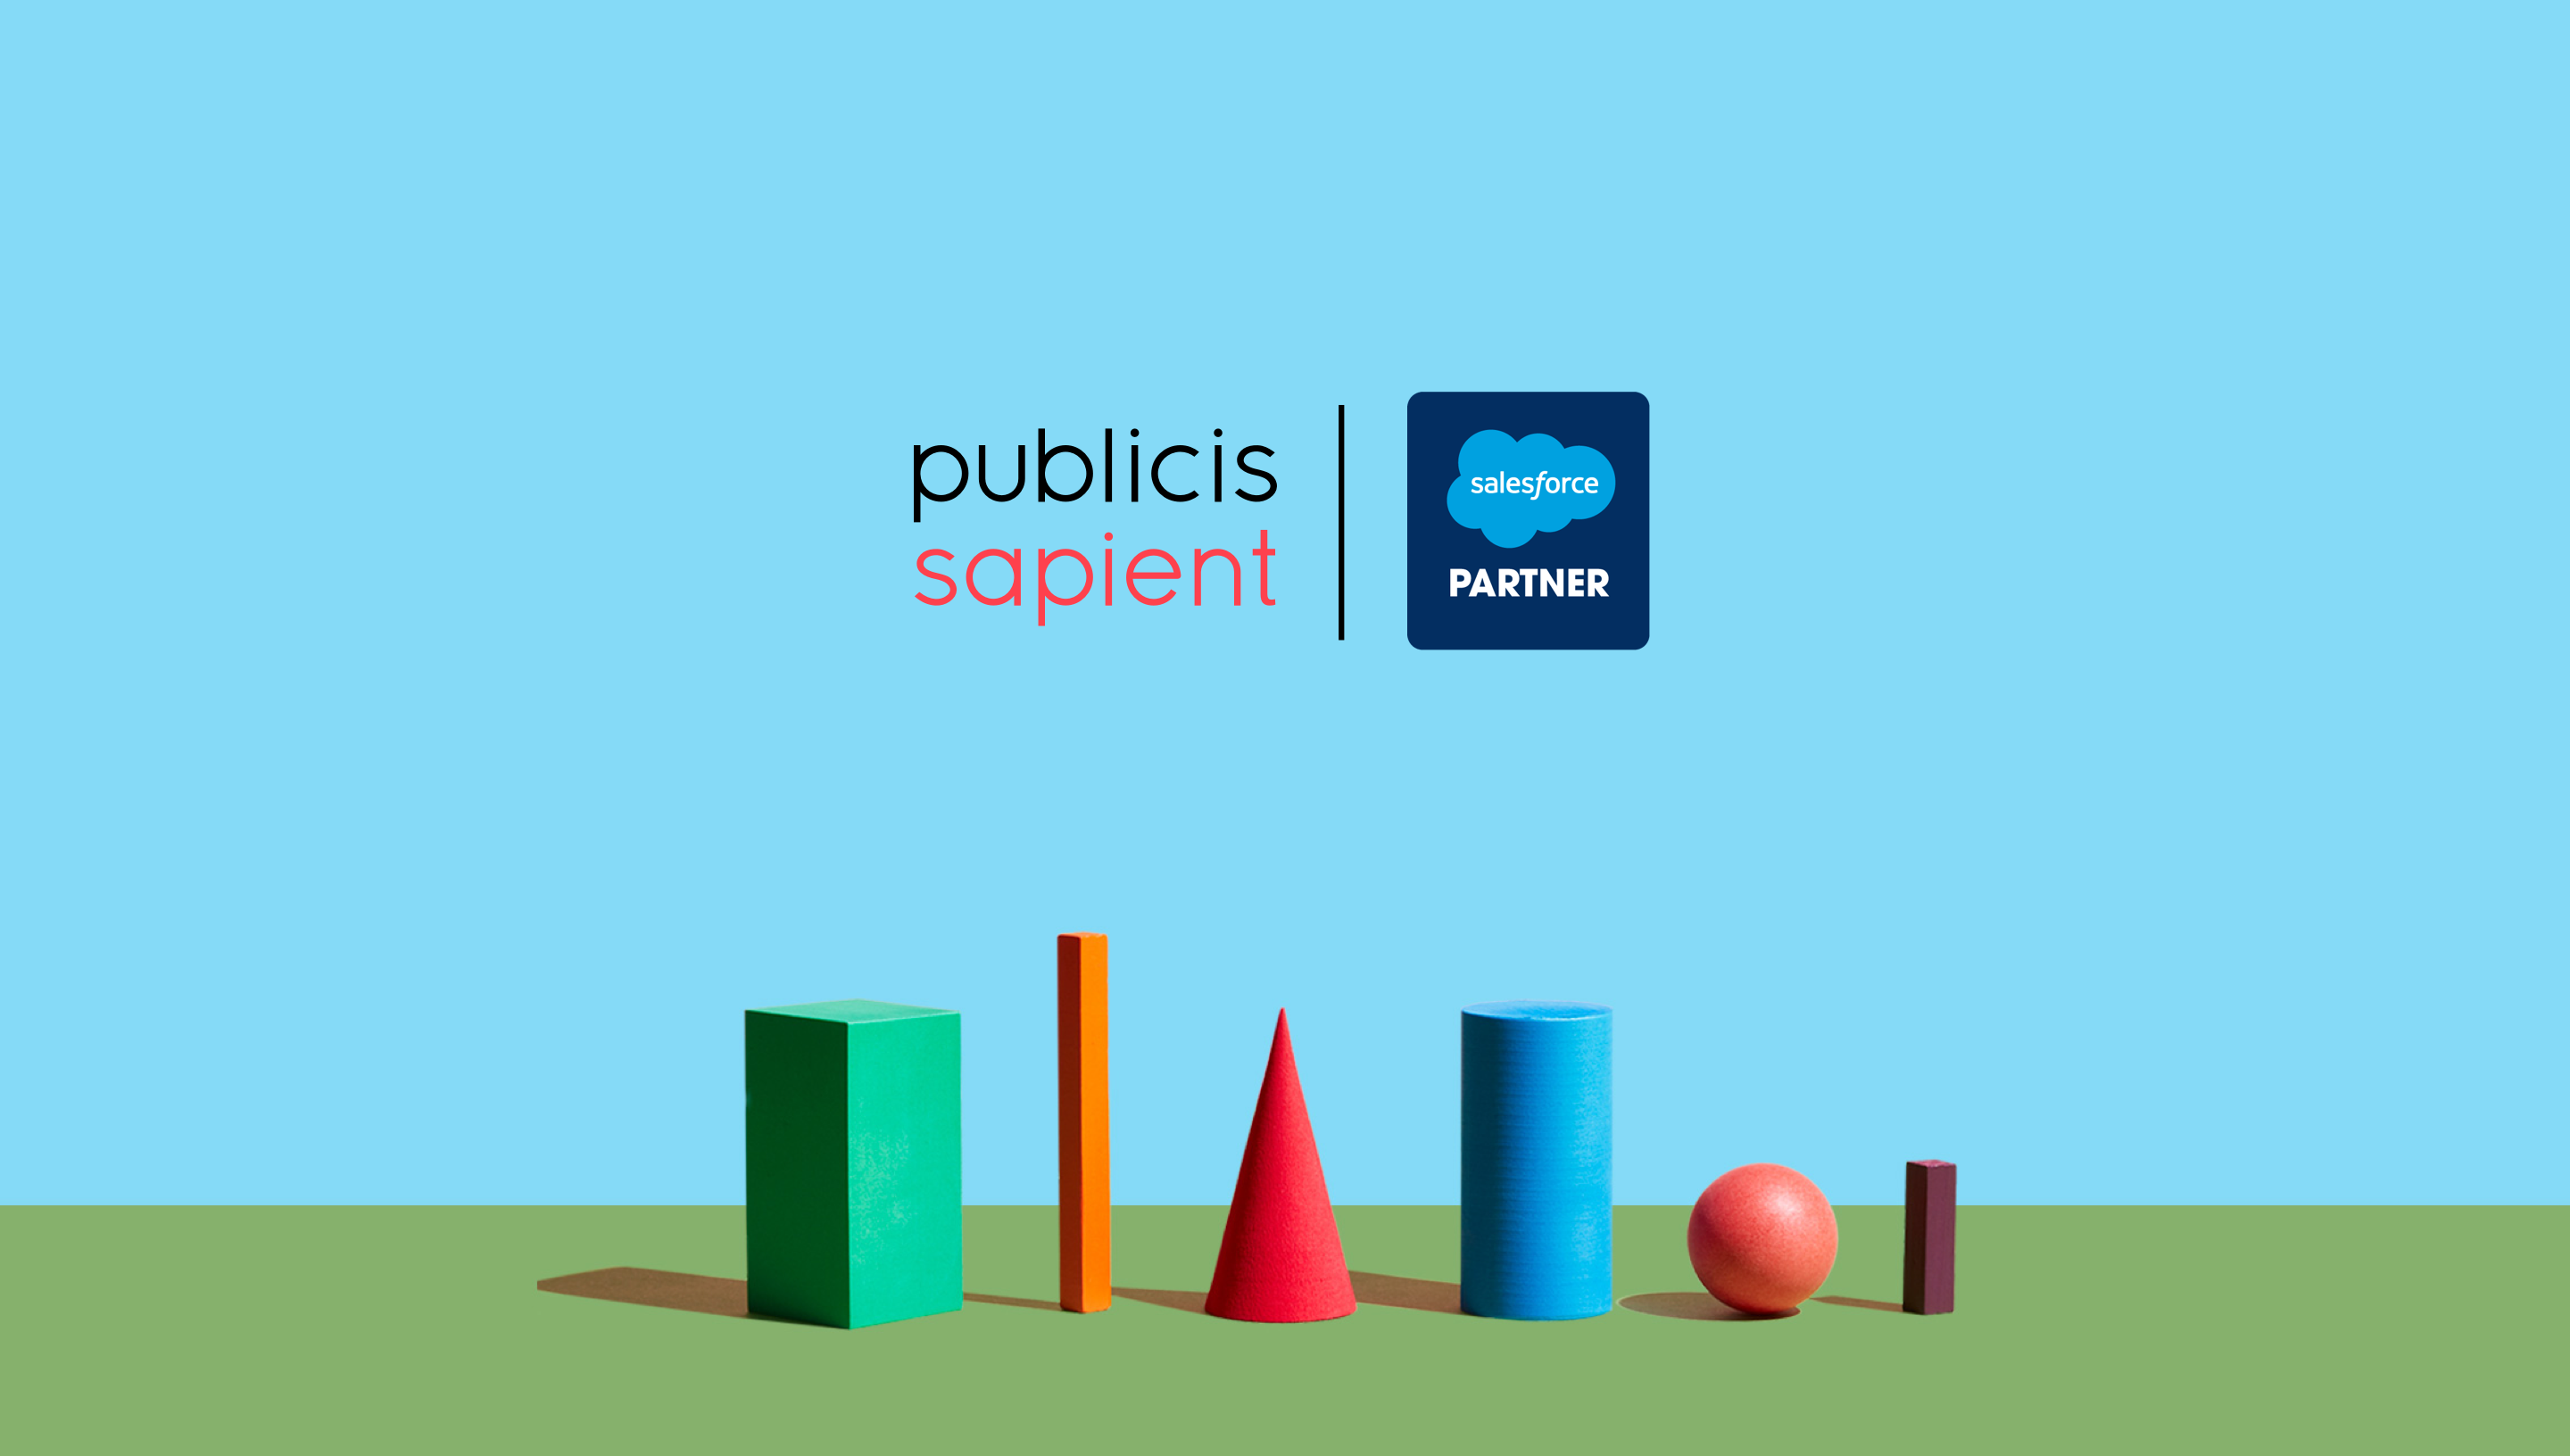 Conceptual landscape of different shapes with PS and Salesforce logos